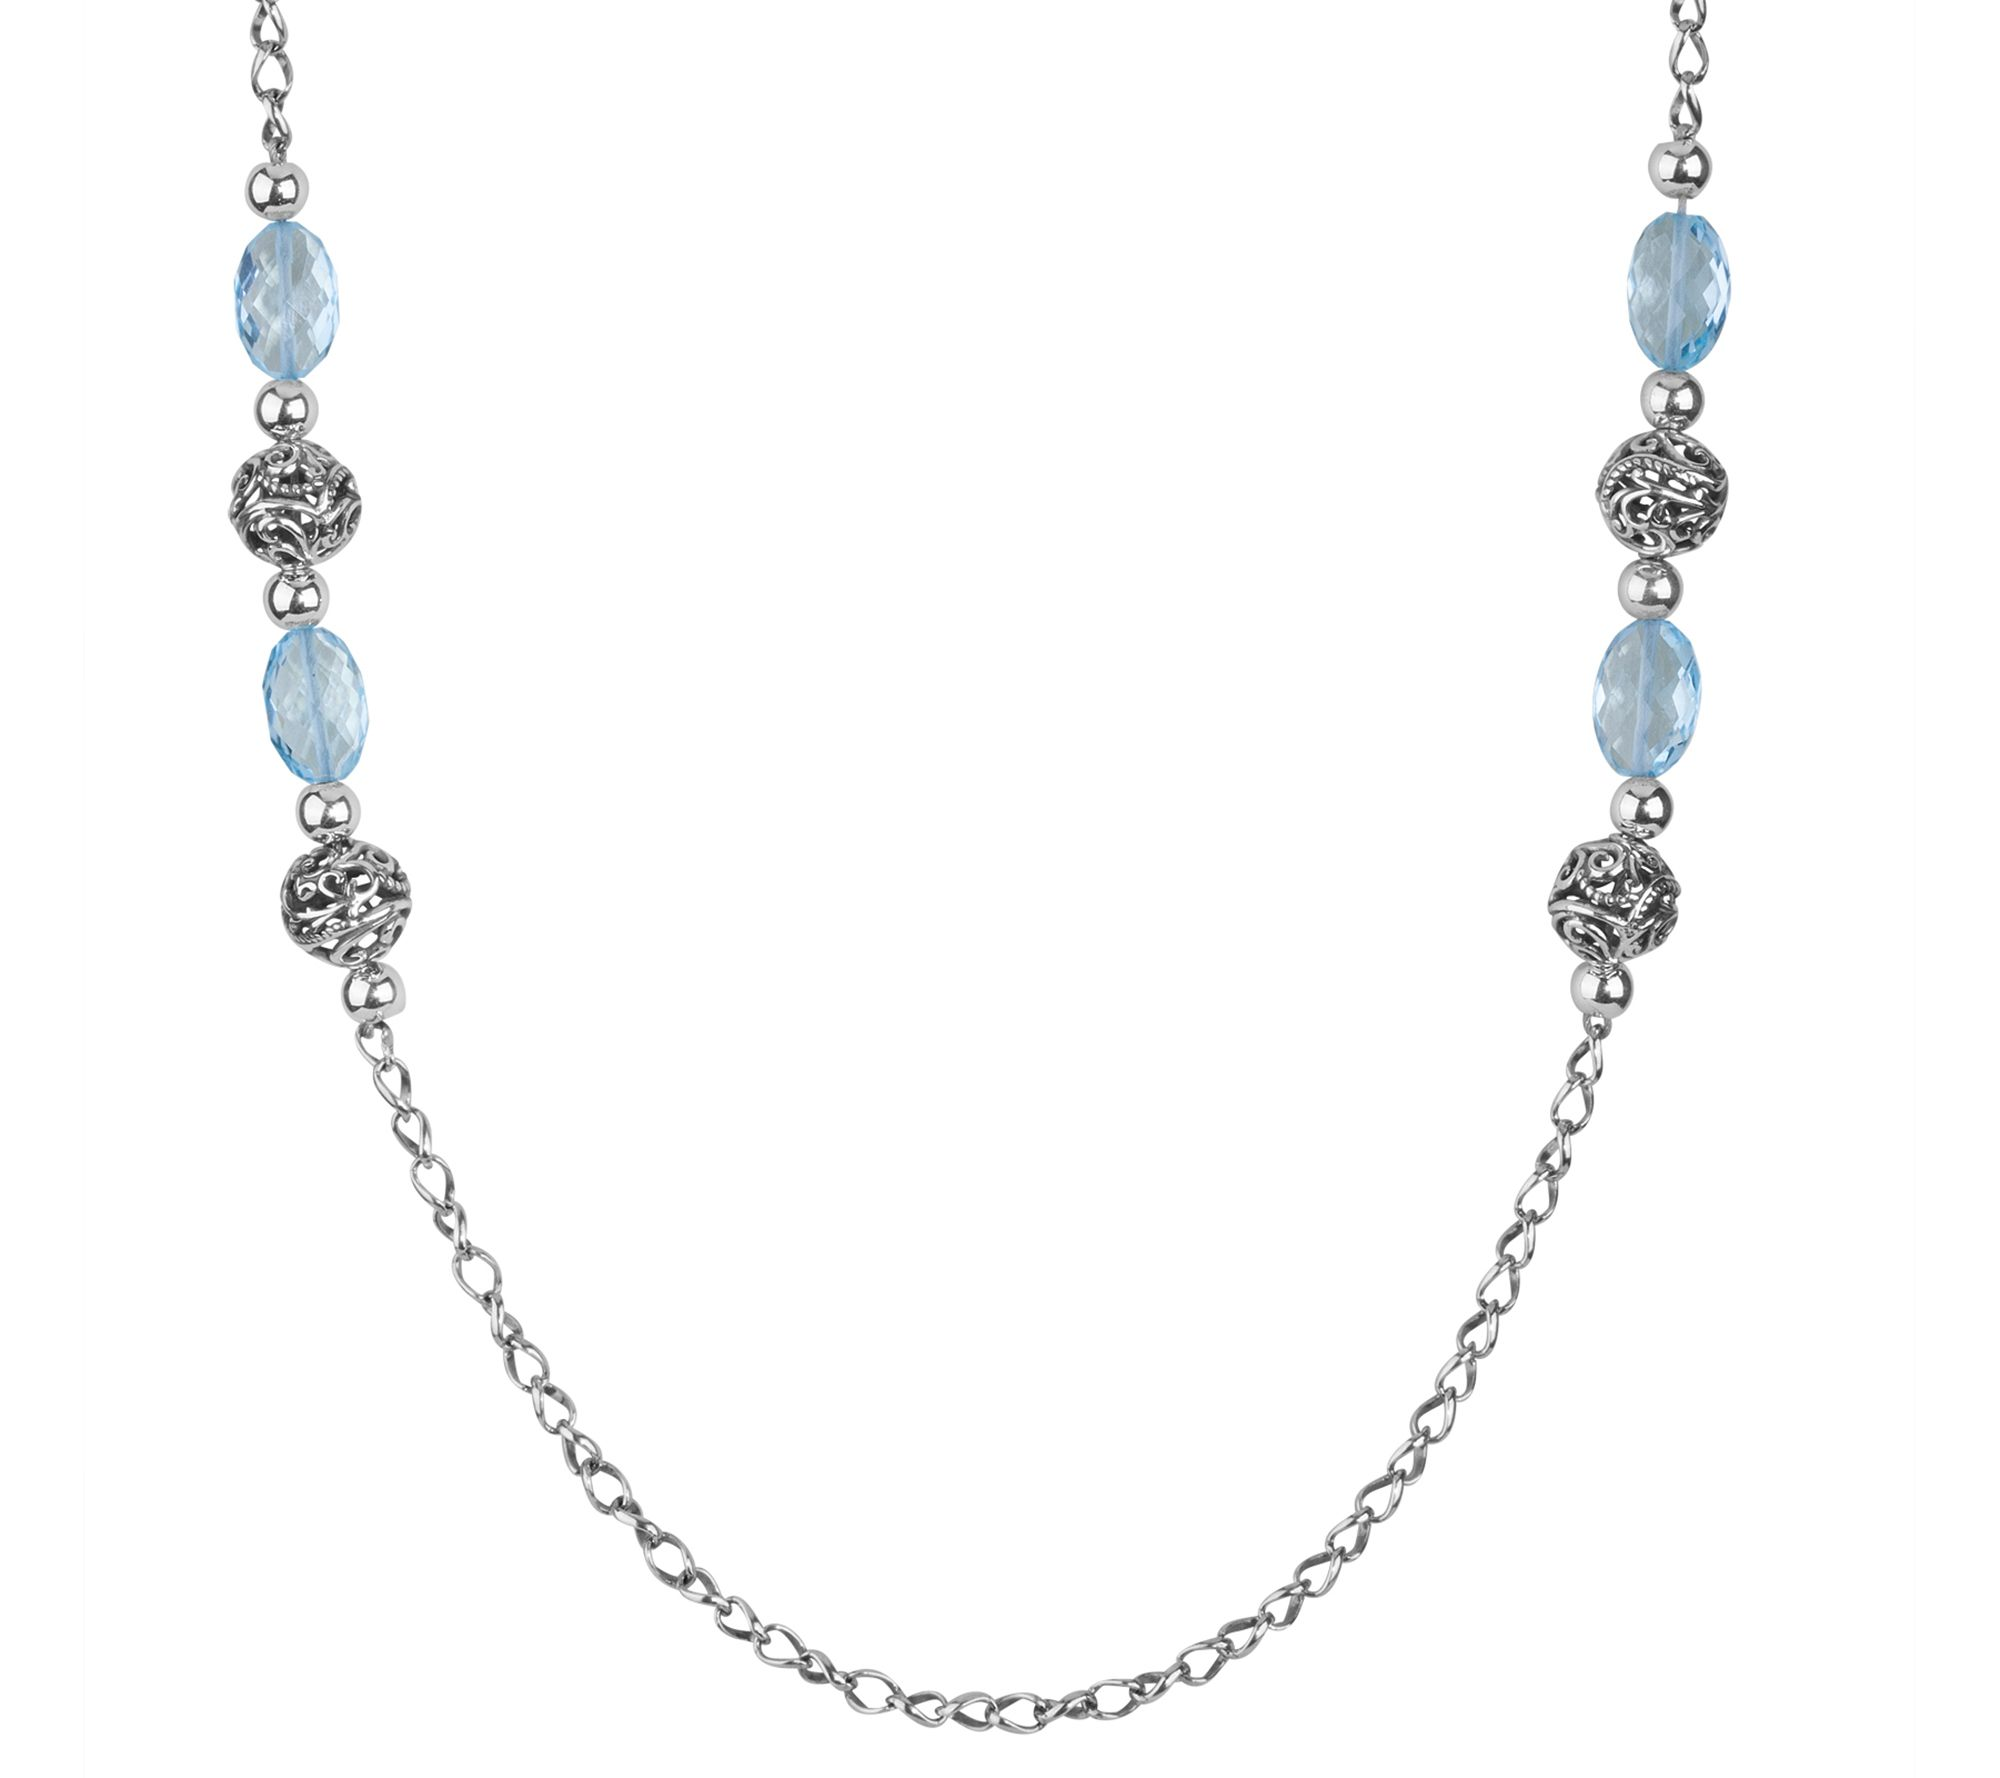 Carolyn pollack signature sterling blue topaz 34 necklace for Carolyn pollack jewelry qvc